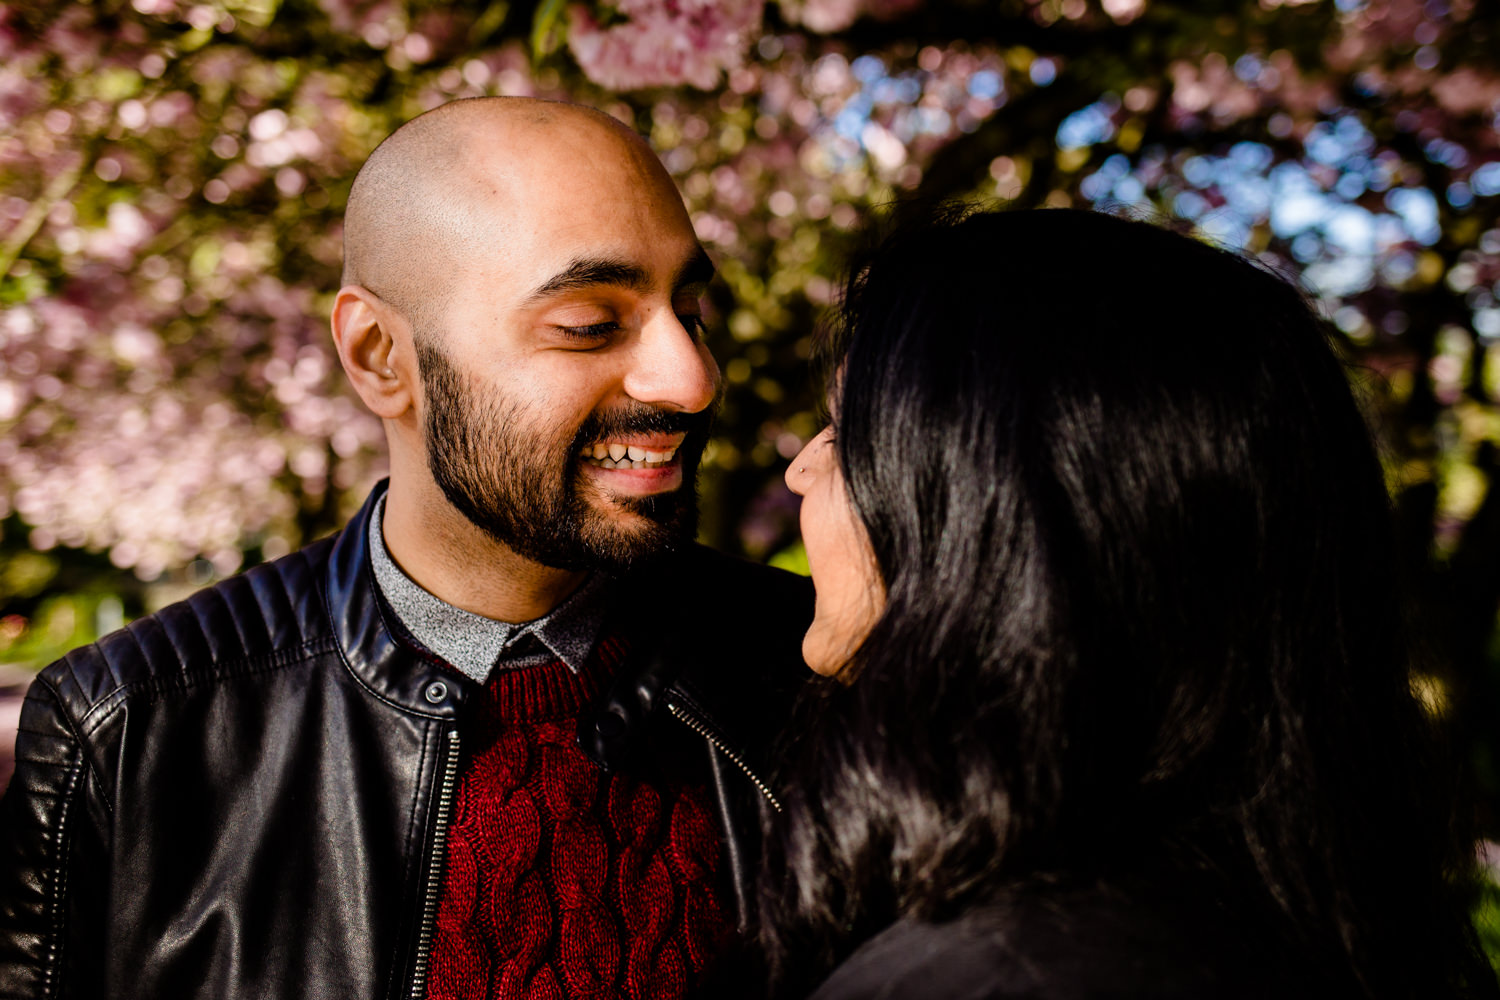 A man and woman looking at each other under a blossom tree in Manchester